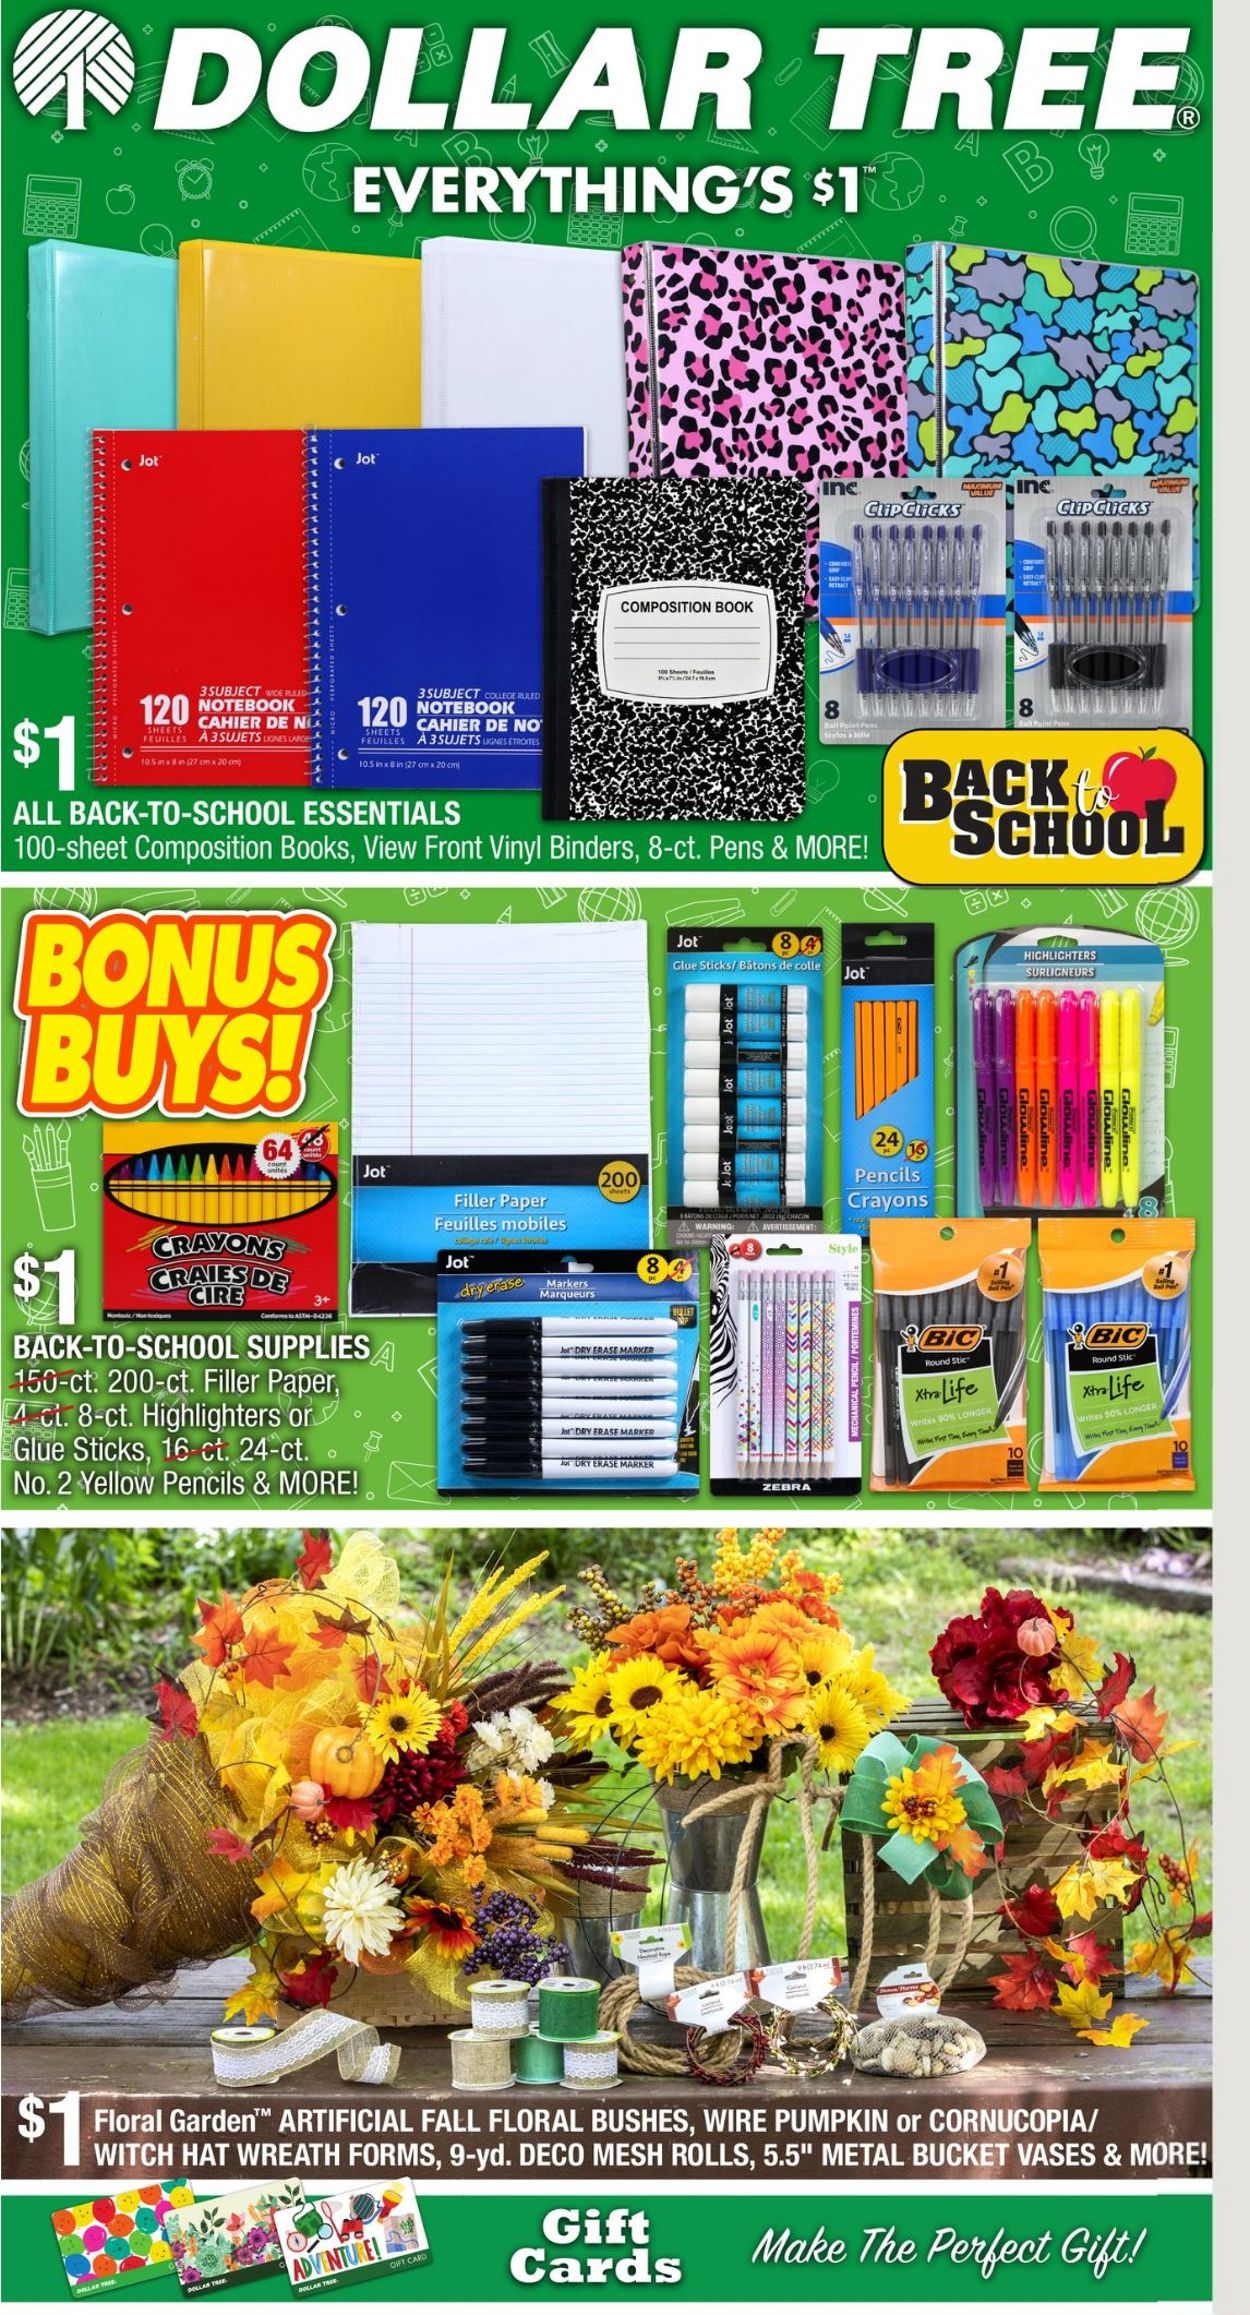 Dollar Tree weekly-ad